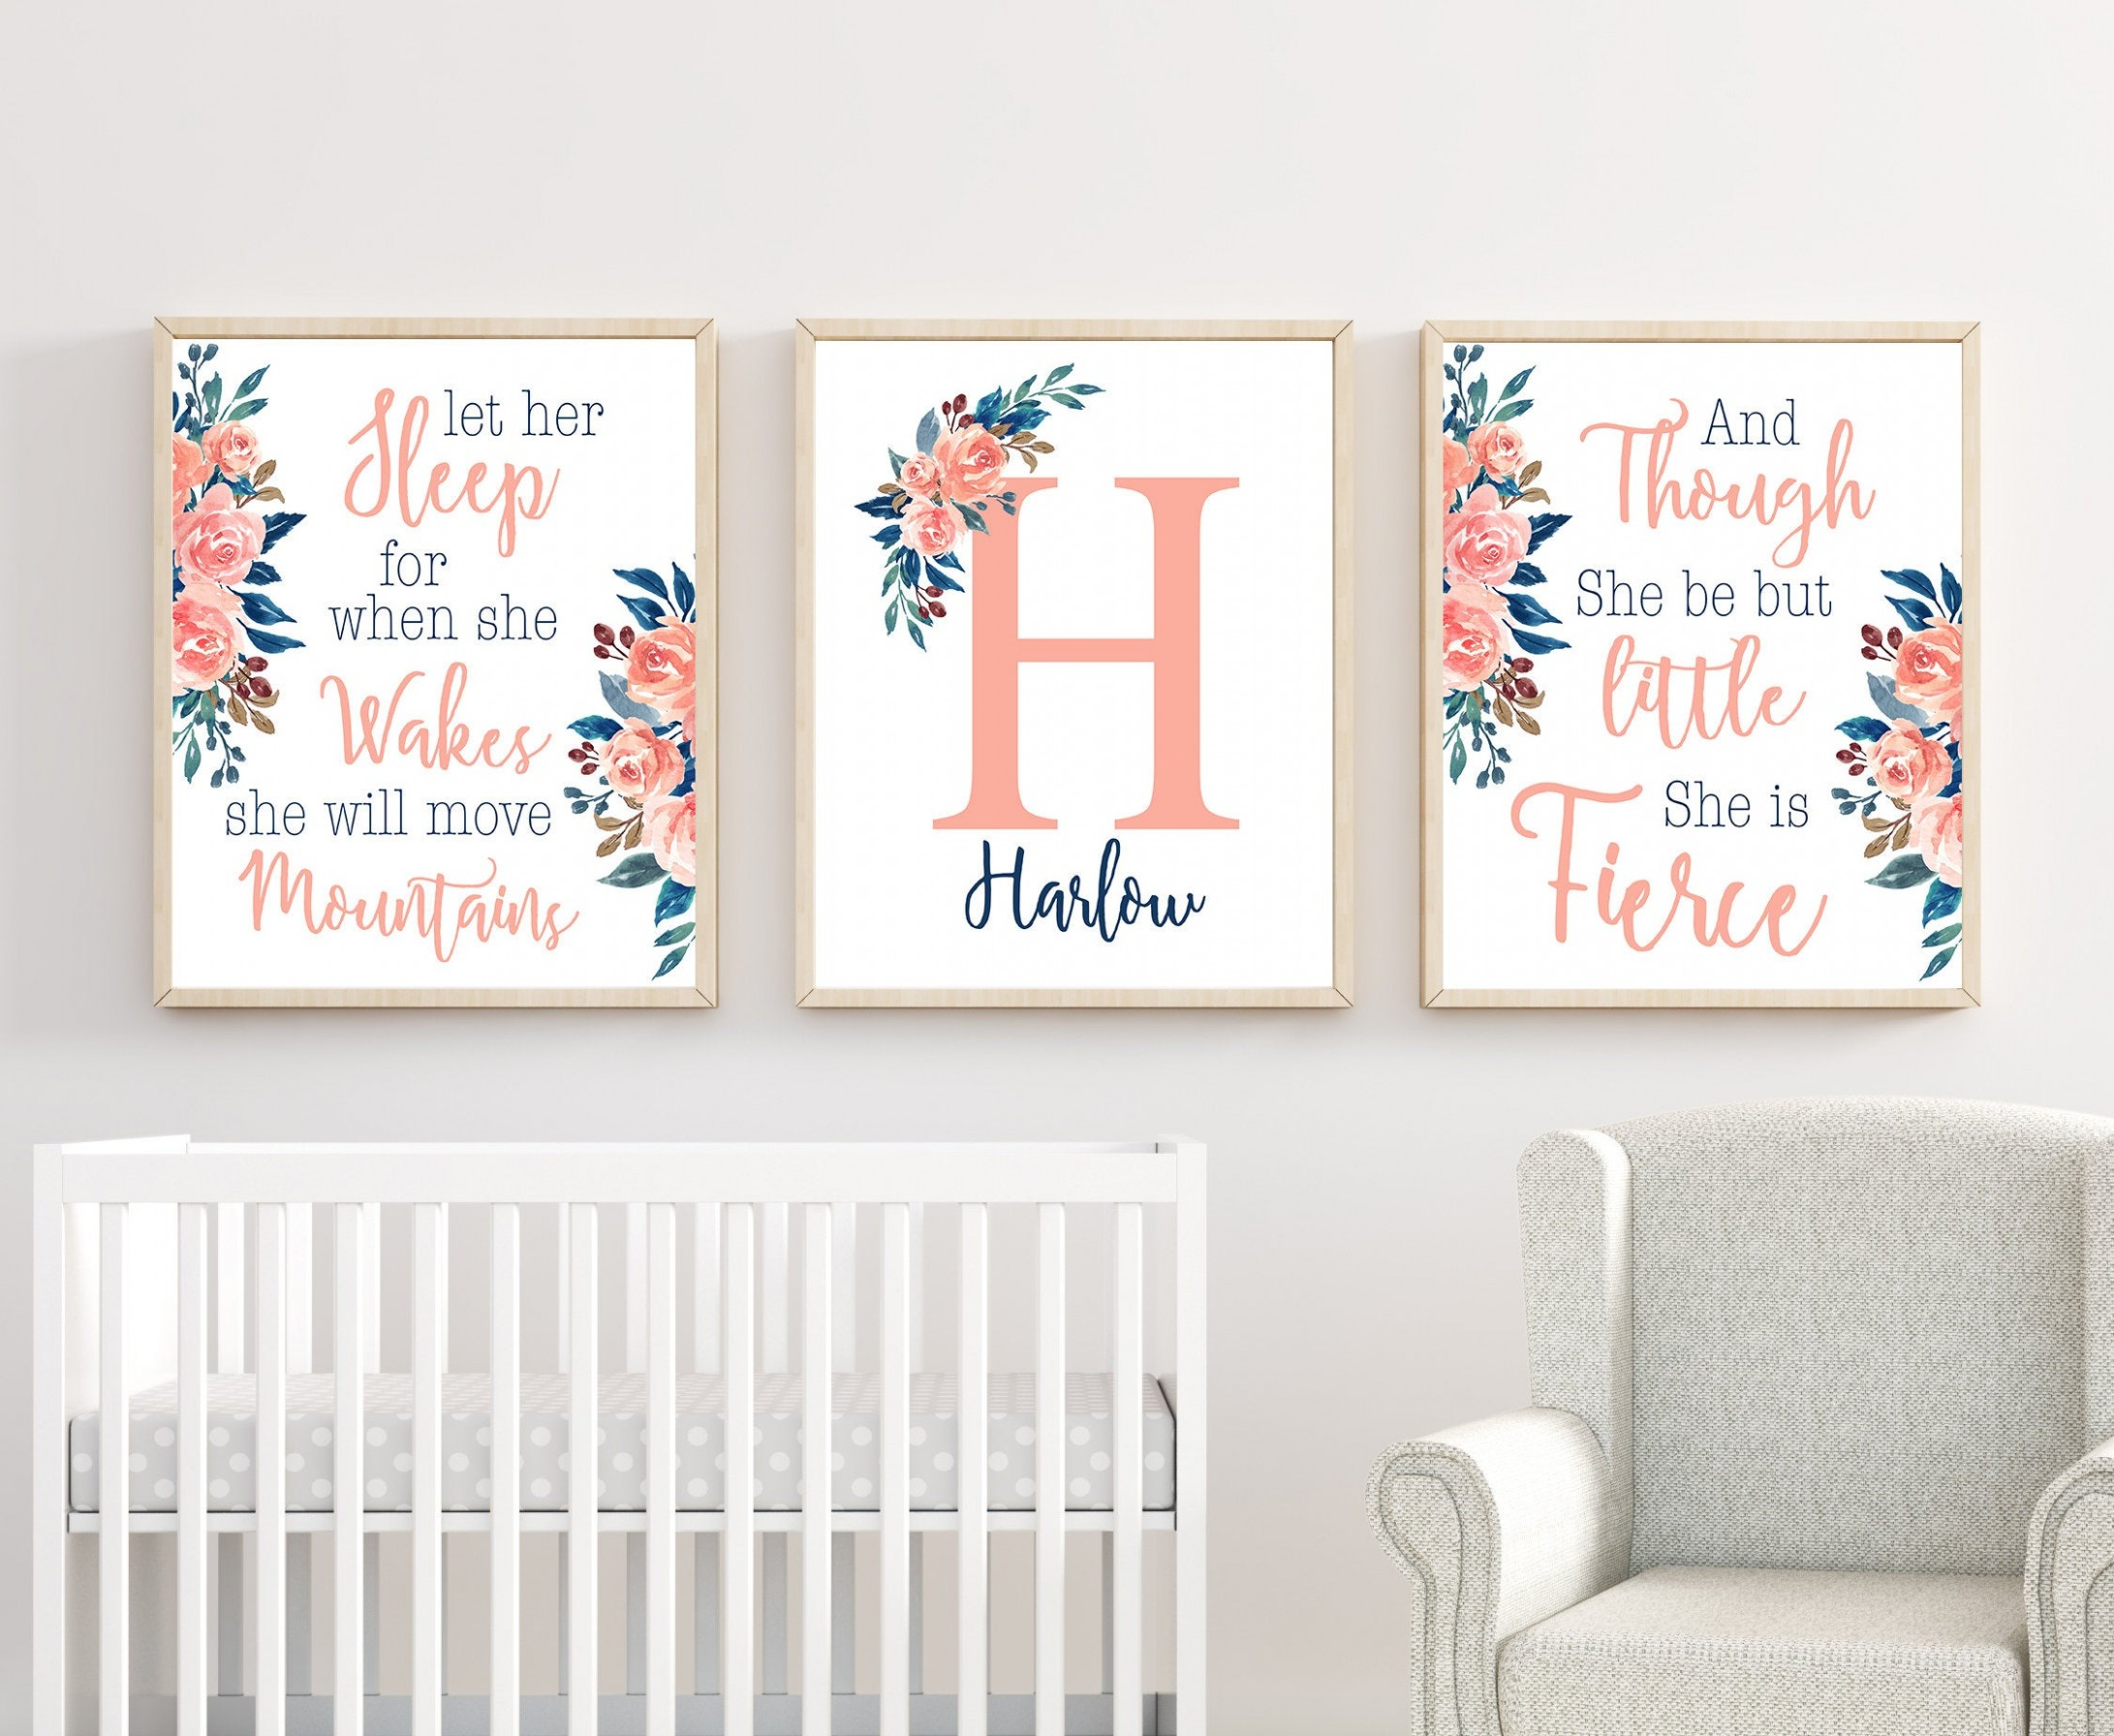 Floral Nursery Wall Art, Nursery Wall Art, Baby Room Prints, Nursery Wall  Decor, Girl Nursery Decor - Baby Room Wall Art